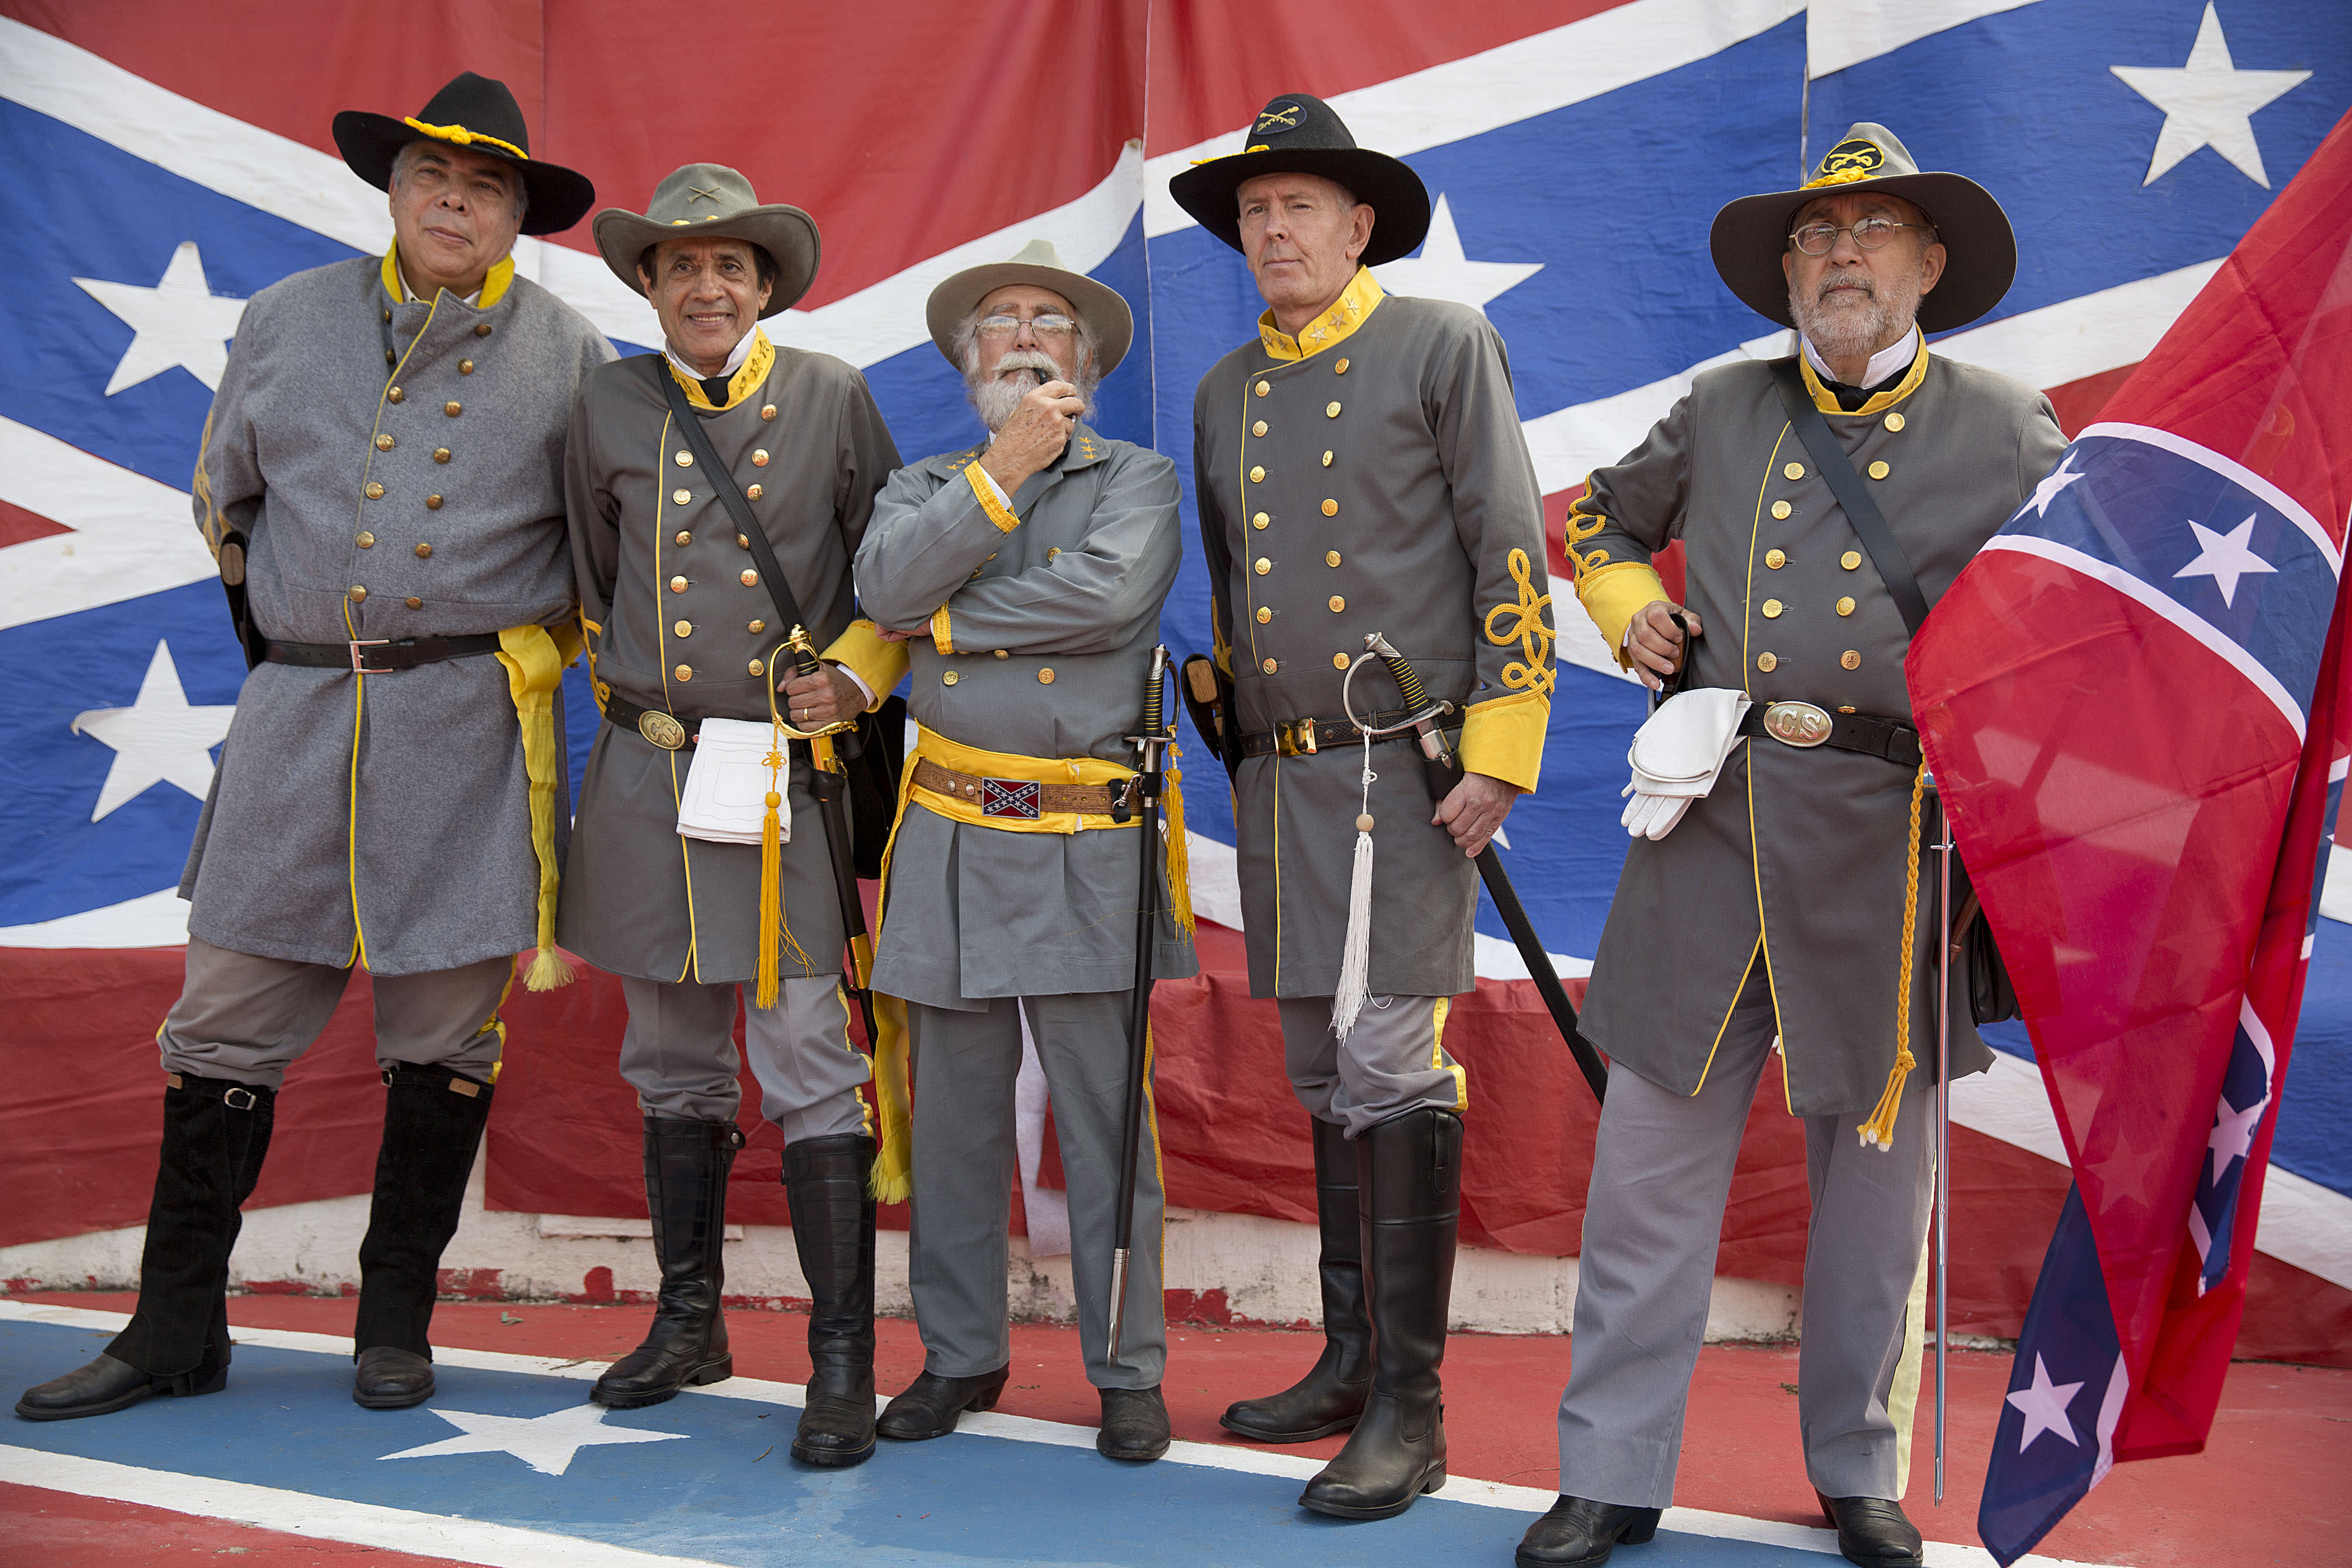 American Civil War commemorated way down south of Dixie